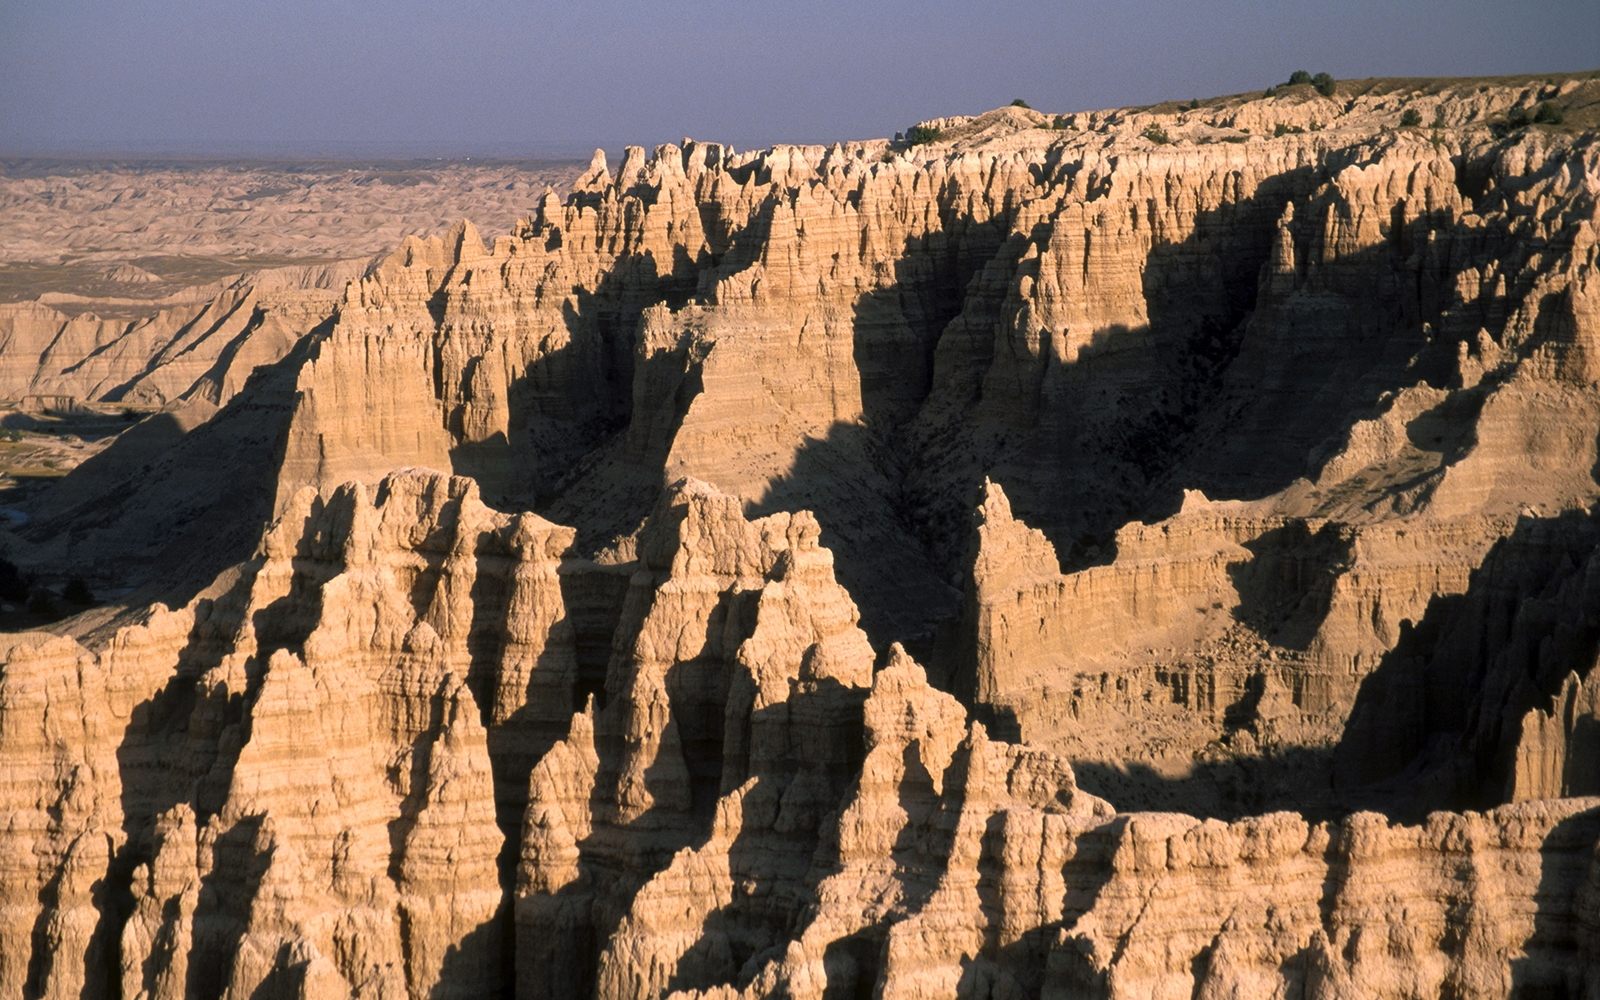 Best U.S. National Park Views: Sheep Mountain Table, Badlands National Park